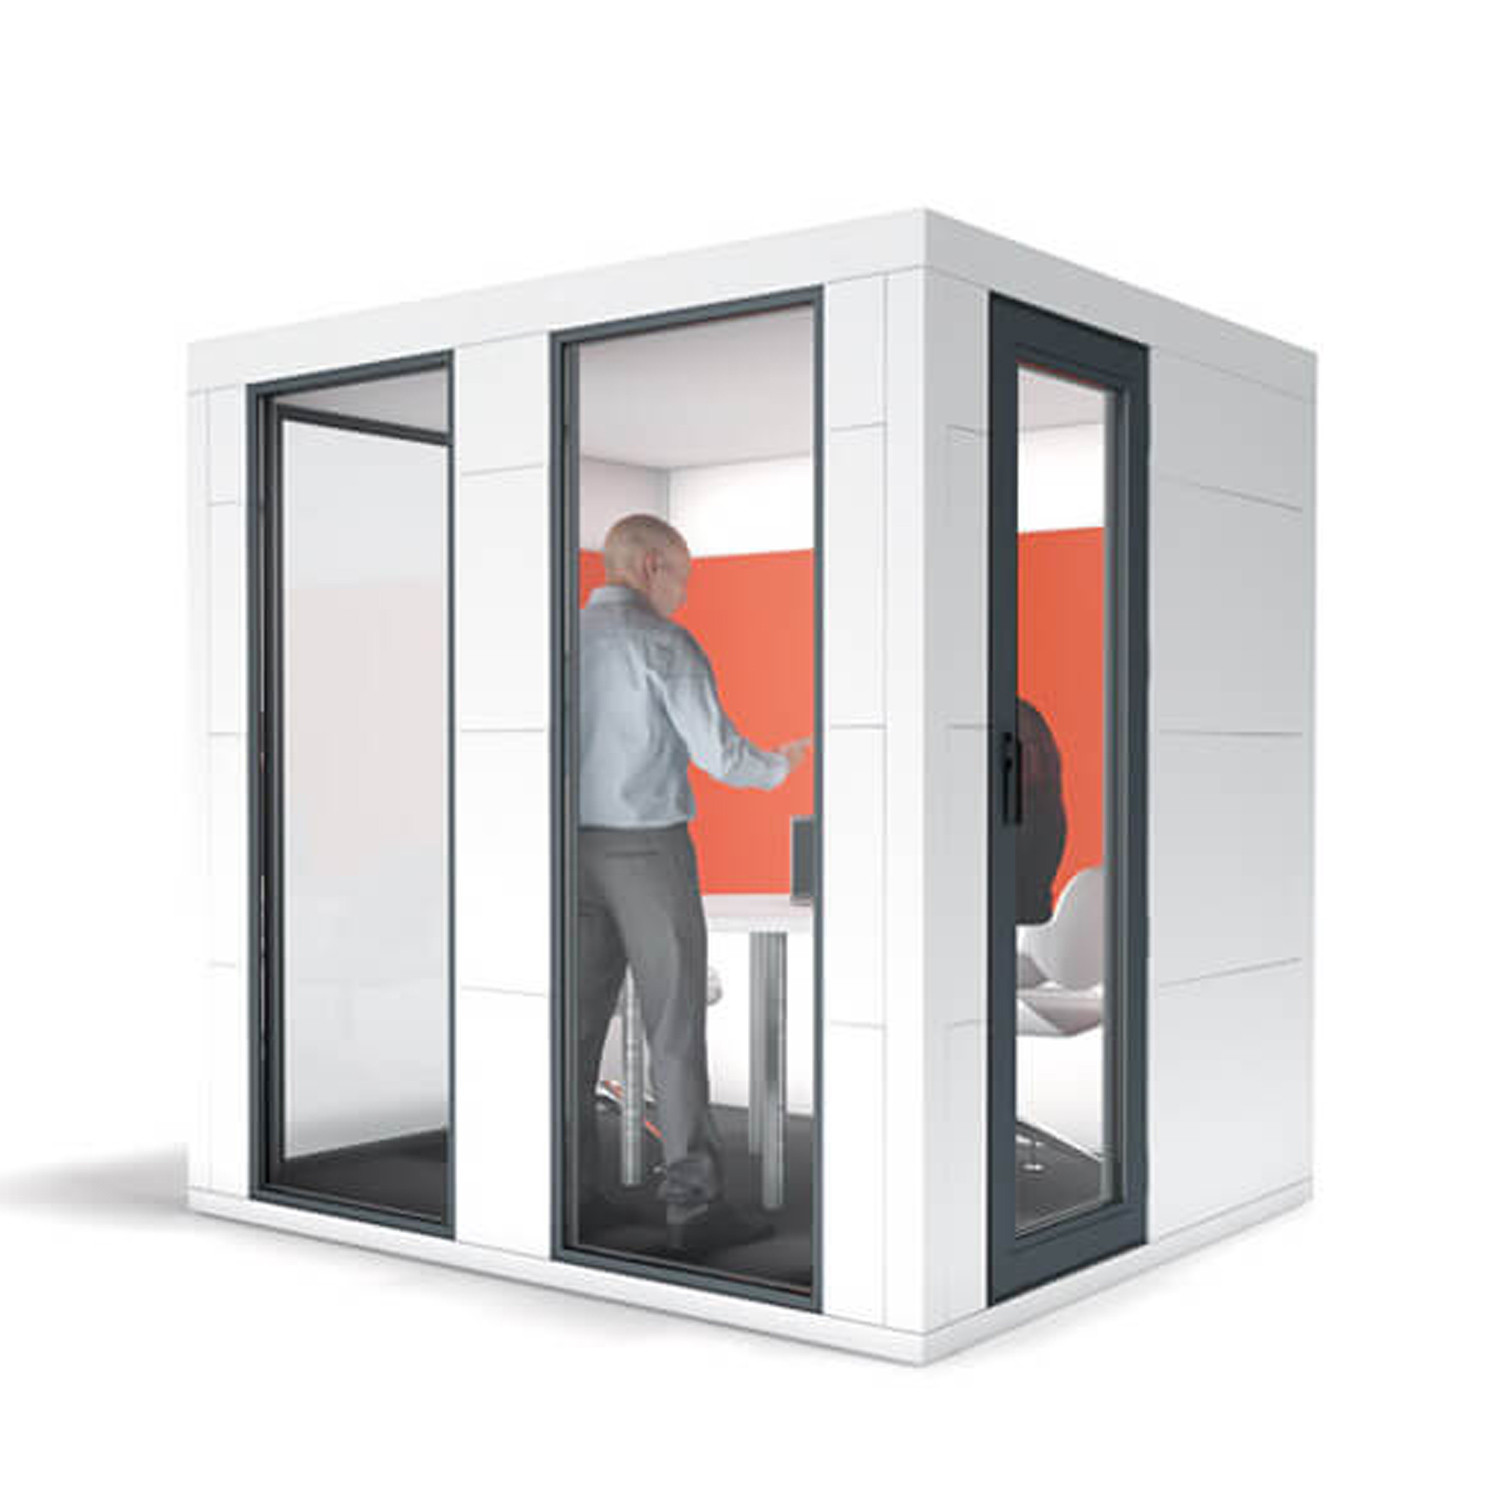 Pods Quote Spacio Bricks Meeting Pods  Soundproof Pods  Apres Furniture